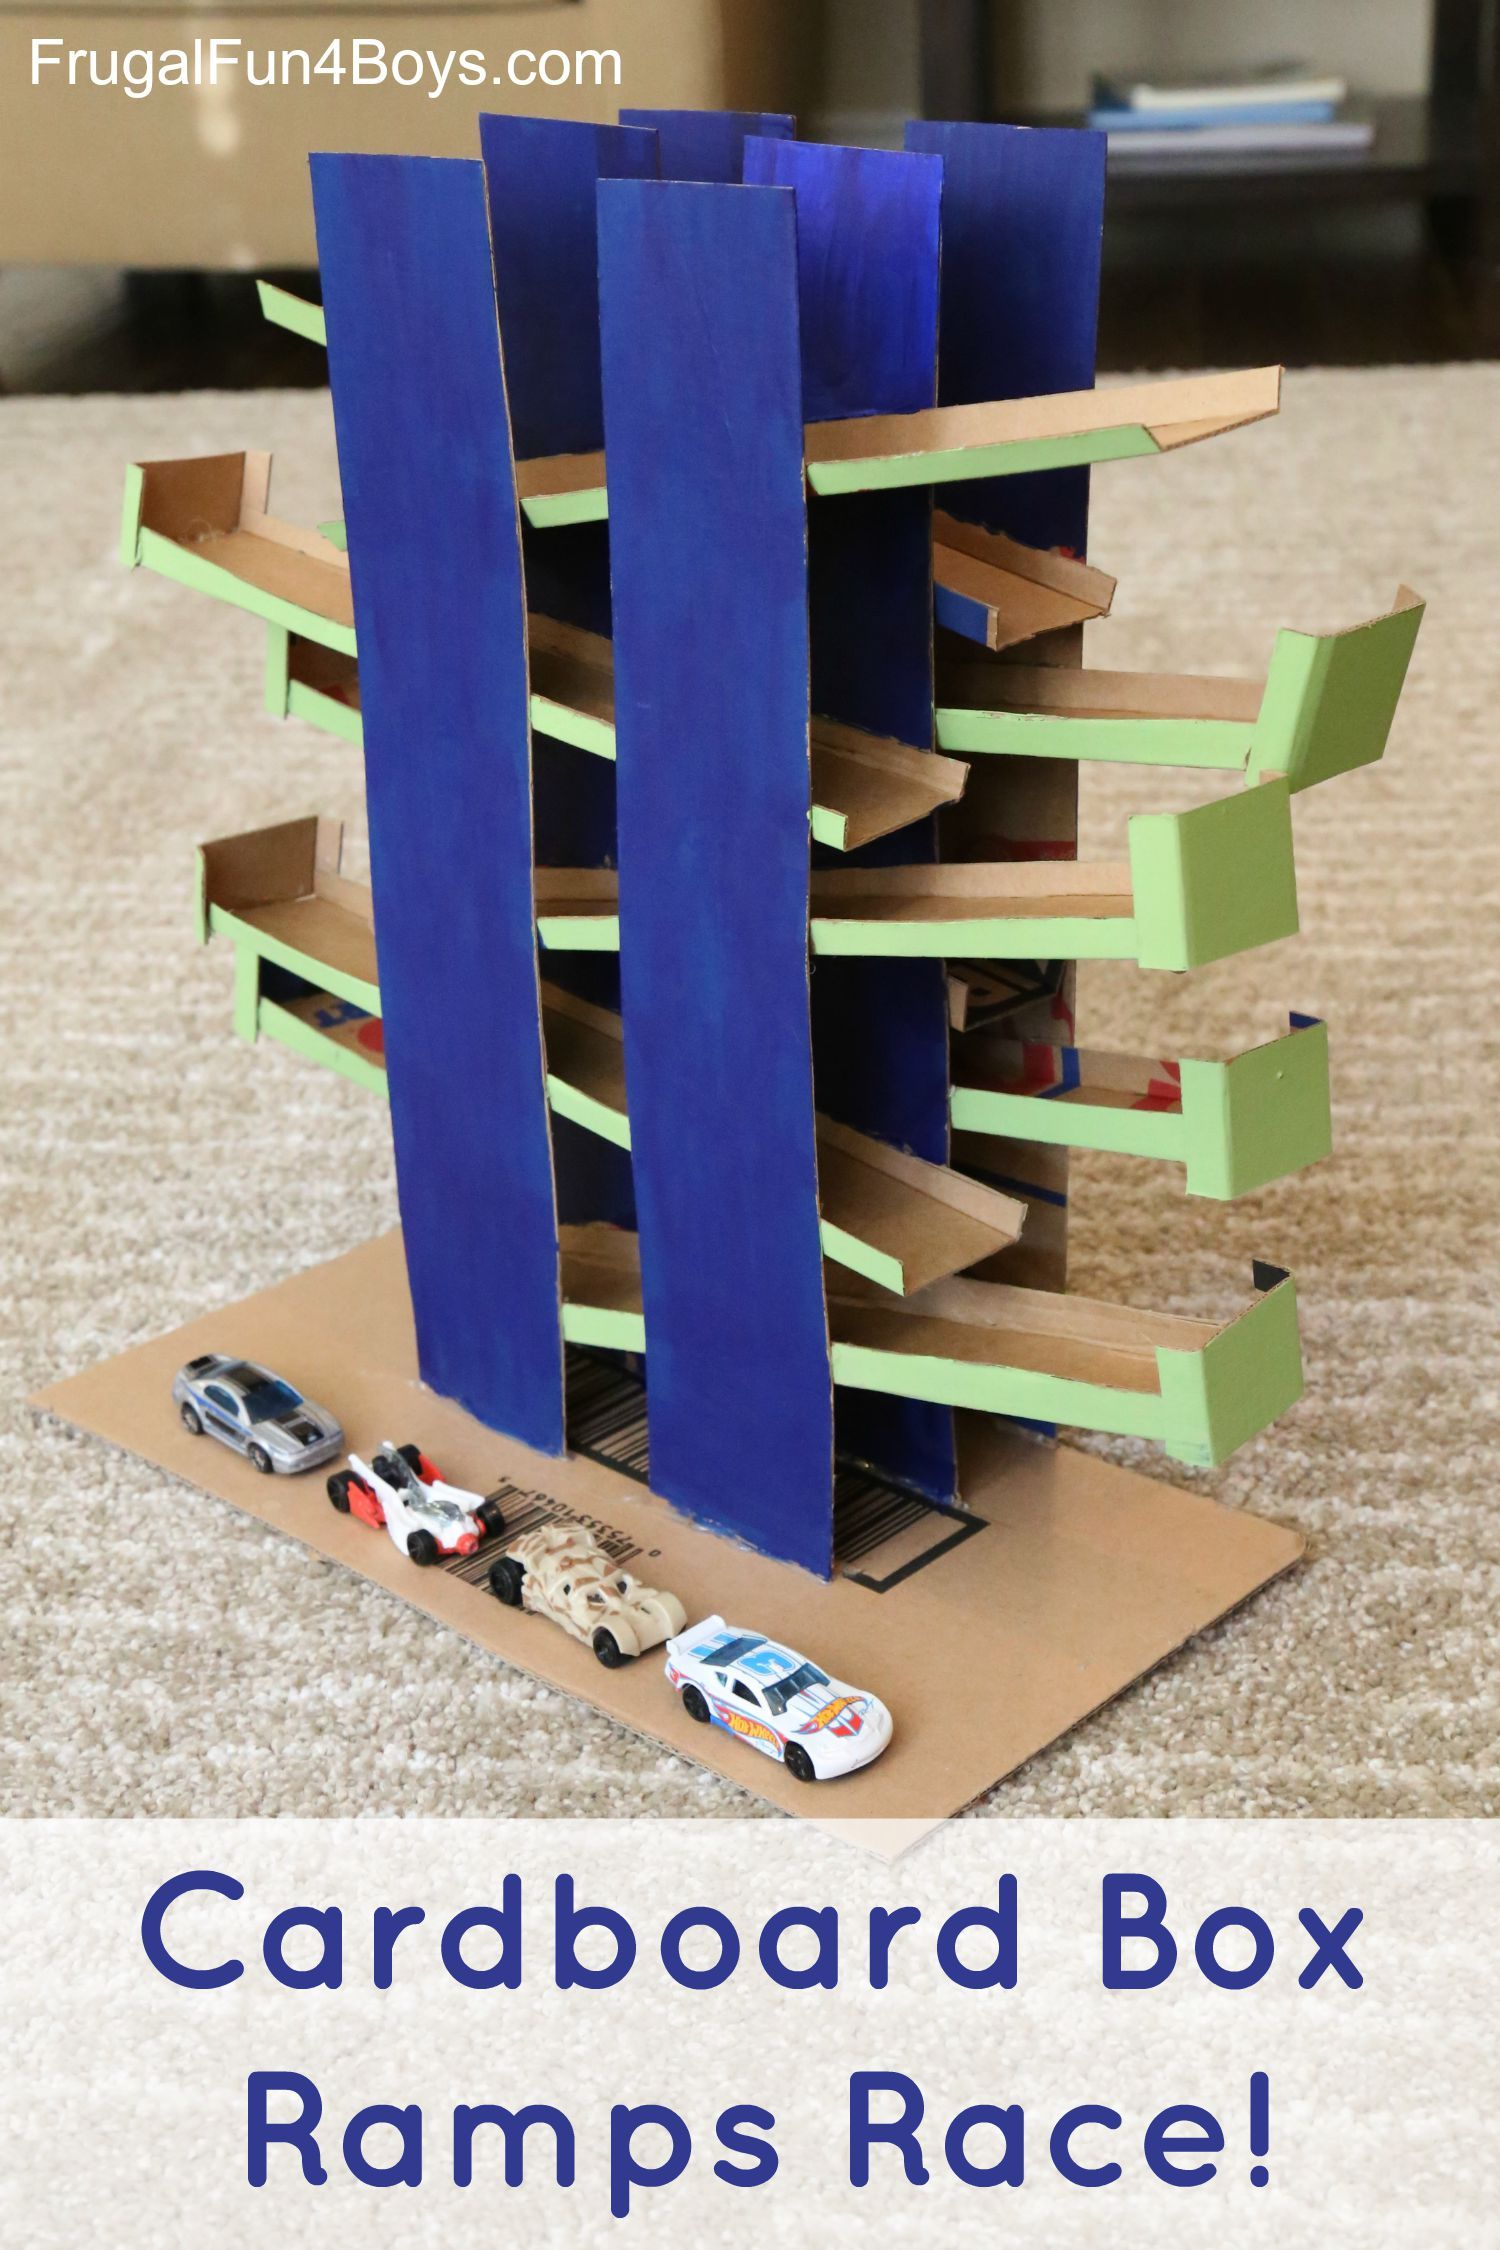 cardboard box ramps race for hot wheels cars matchbox cars cardboard boxes and wheels. Black Bedroom Furniture Sets. Home Design Ideas